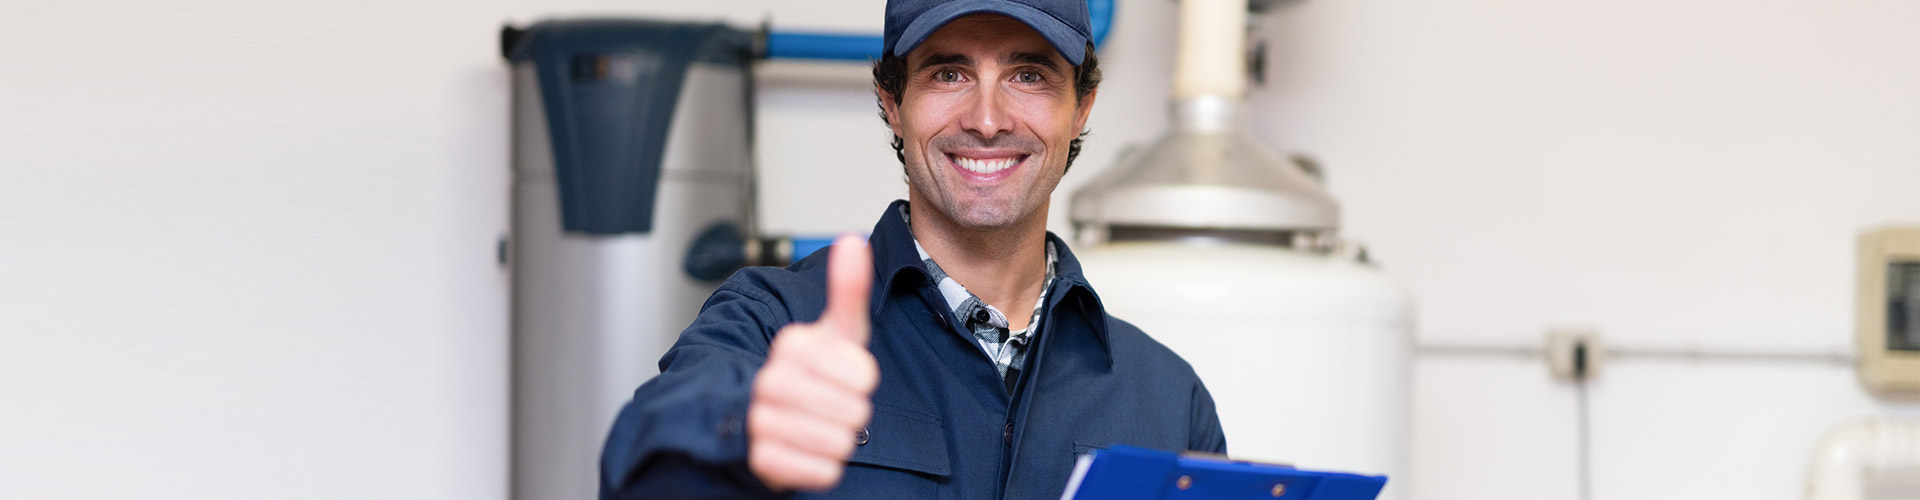 Air Conditioning Repairs in Cary, Raleigh